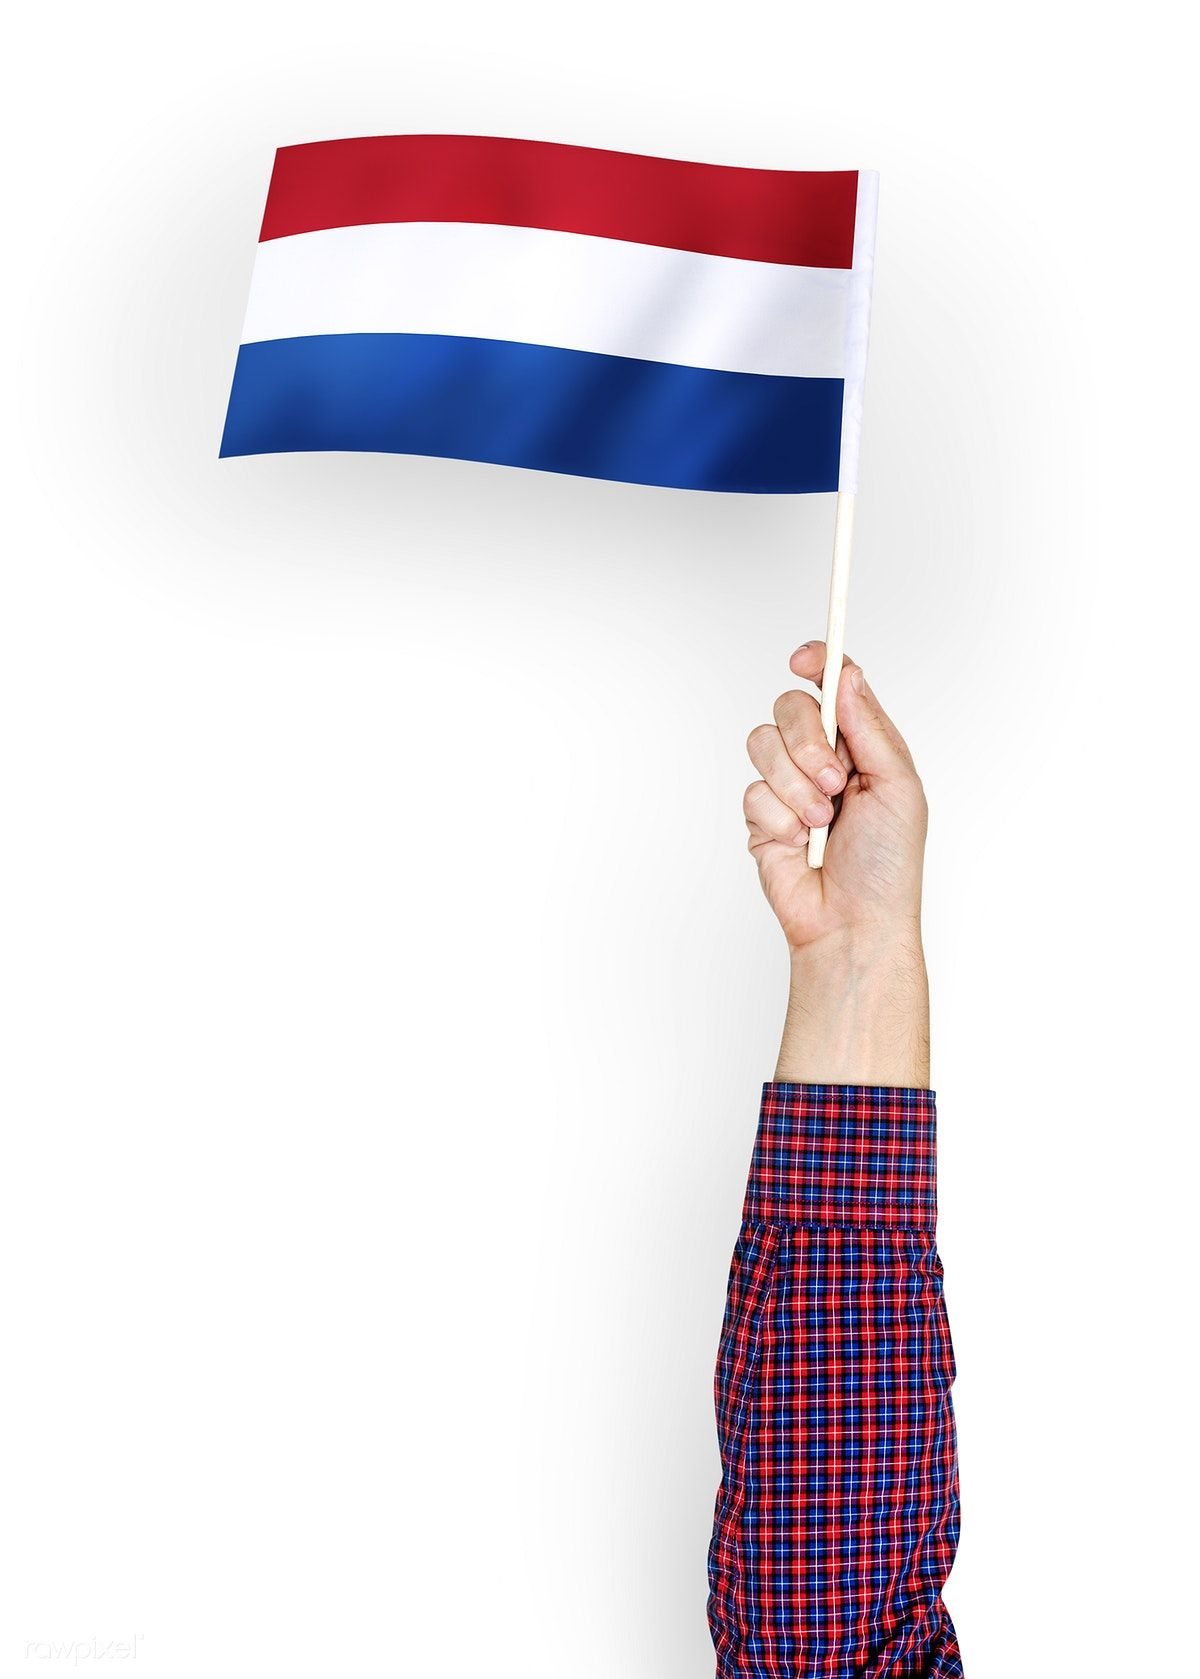 Download Premium Psd Of Person Waving The Flag Of The Netherlands 422554 Netherlands Flag Flag Flags Of The World